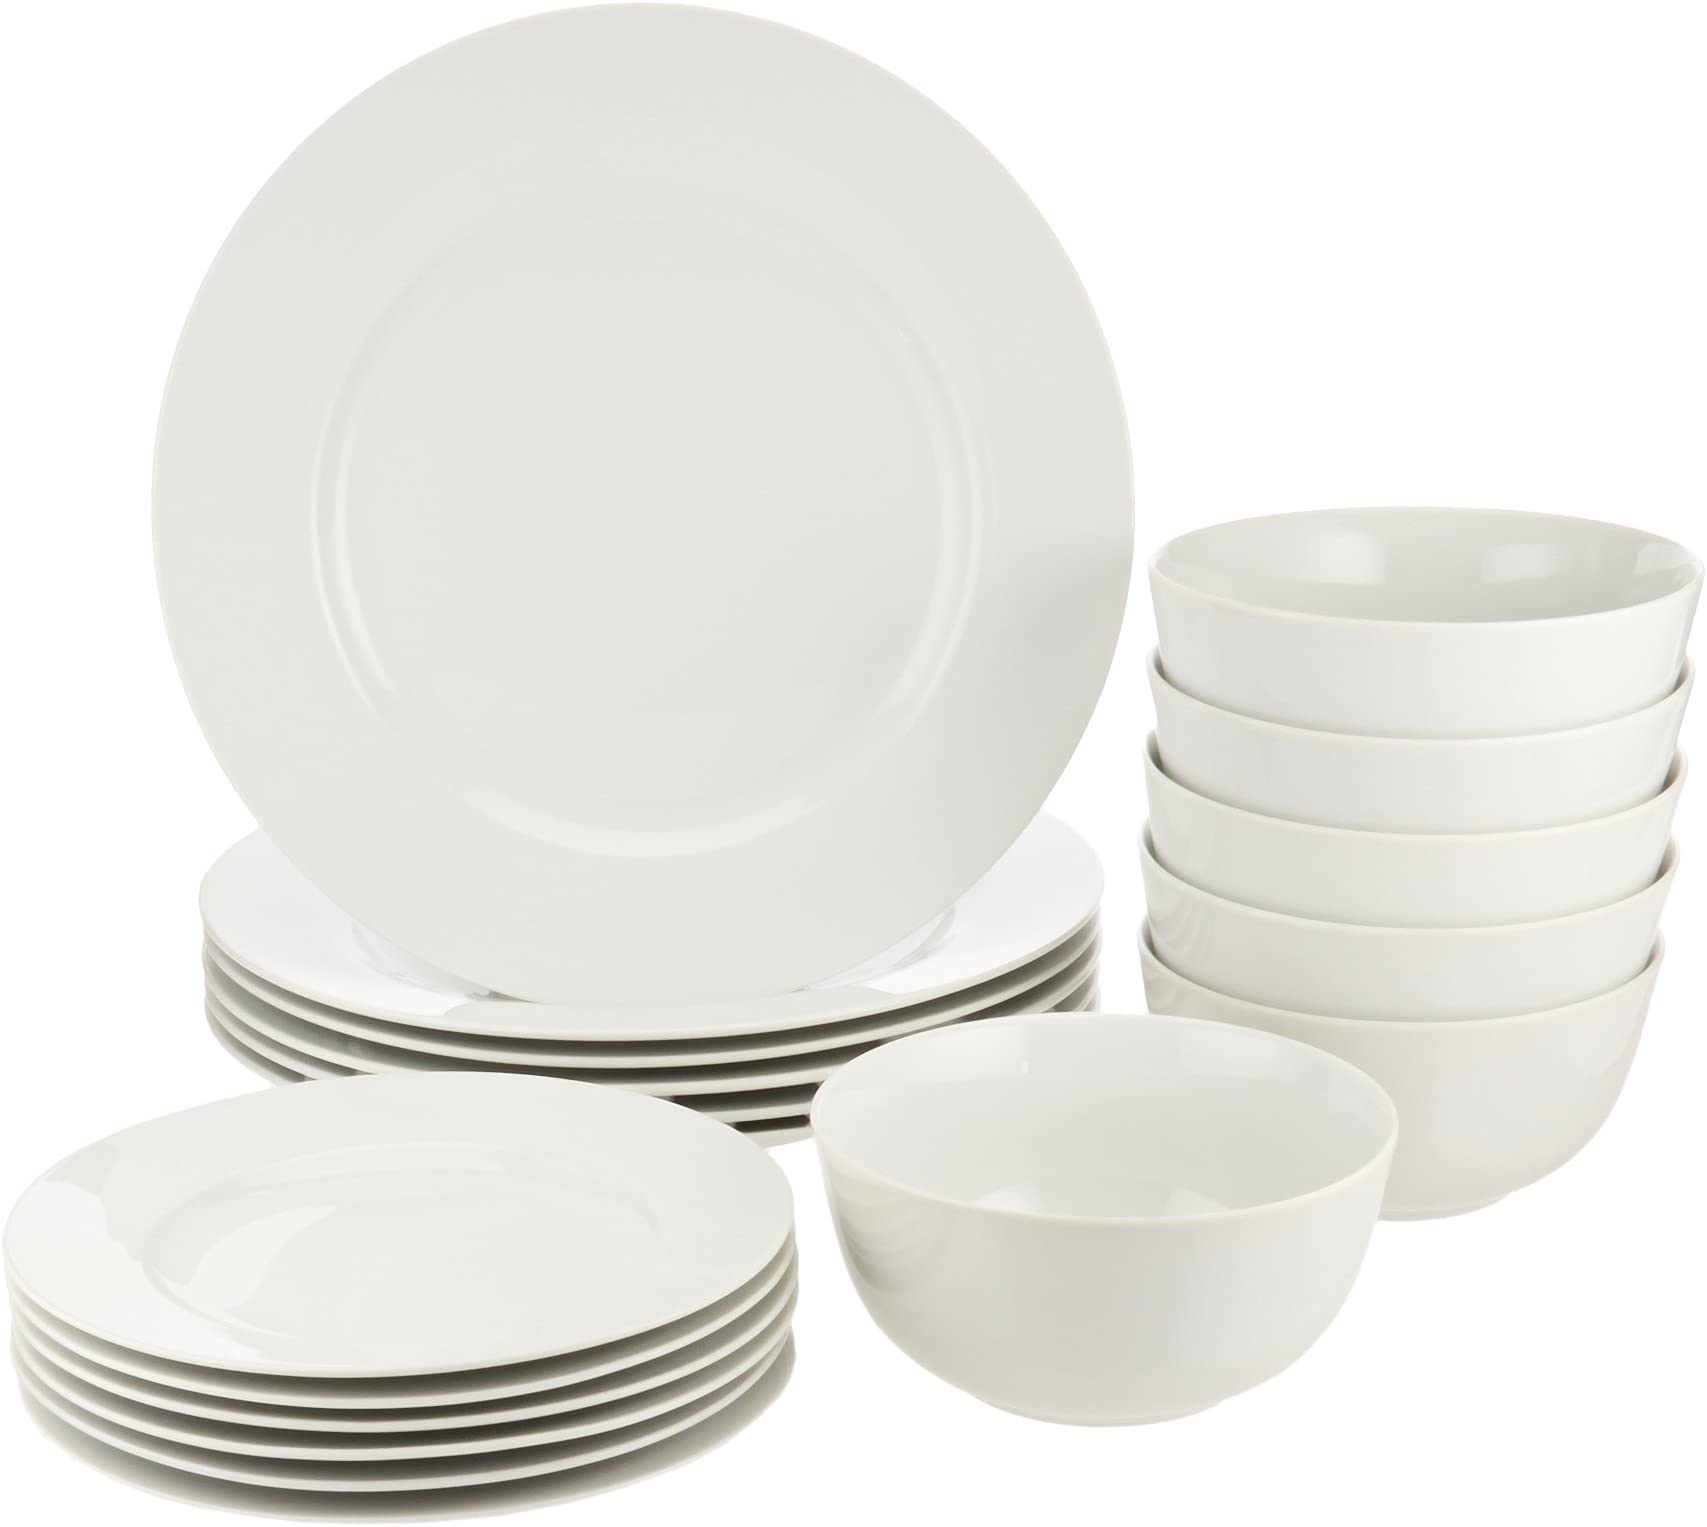 AmazonBasics 18-Piece Dinnerware Set ...  sc 1 st  Amazon.com & Amazon.com: Dinnerware Sets: Home u0026 Kitchen